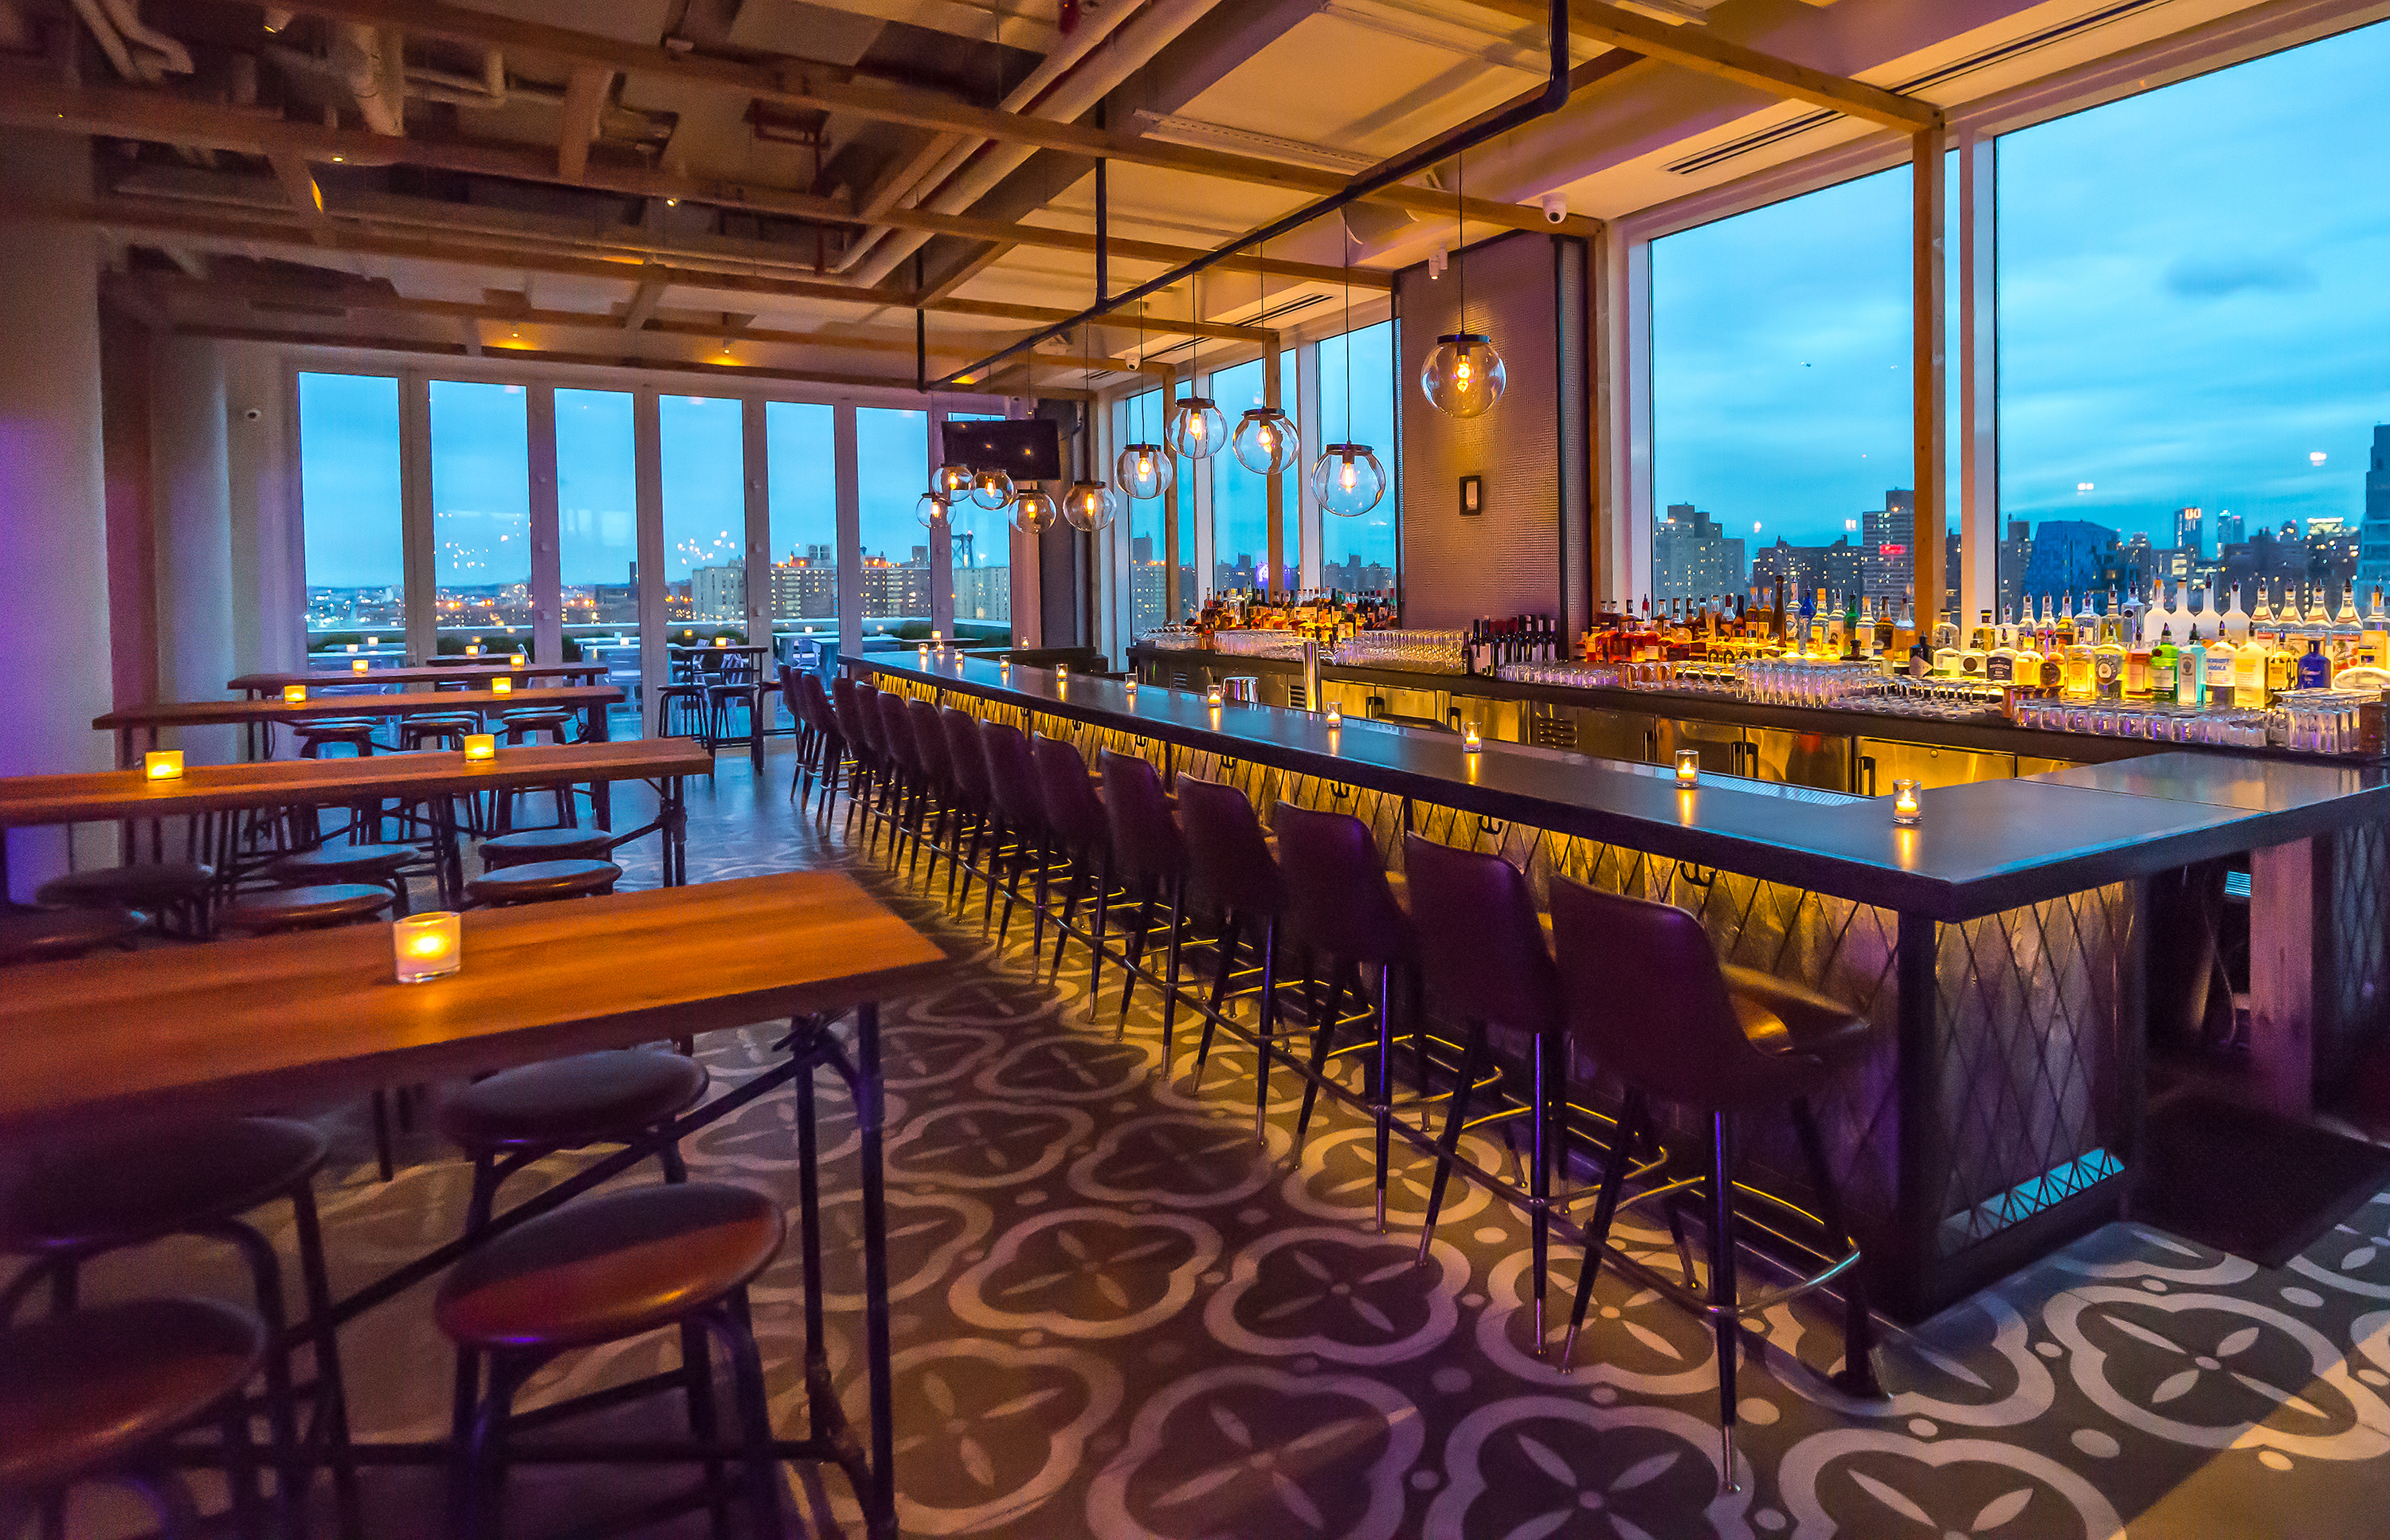 The Best Restaurants And Bars In New York To Watch Super